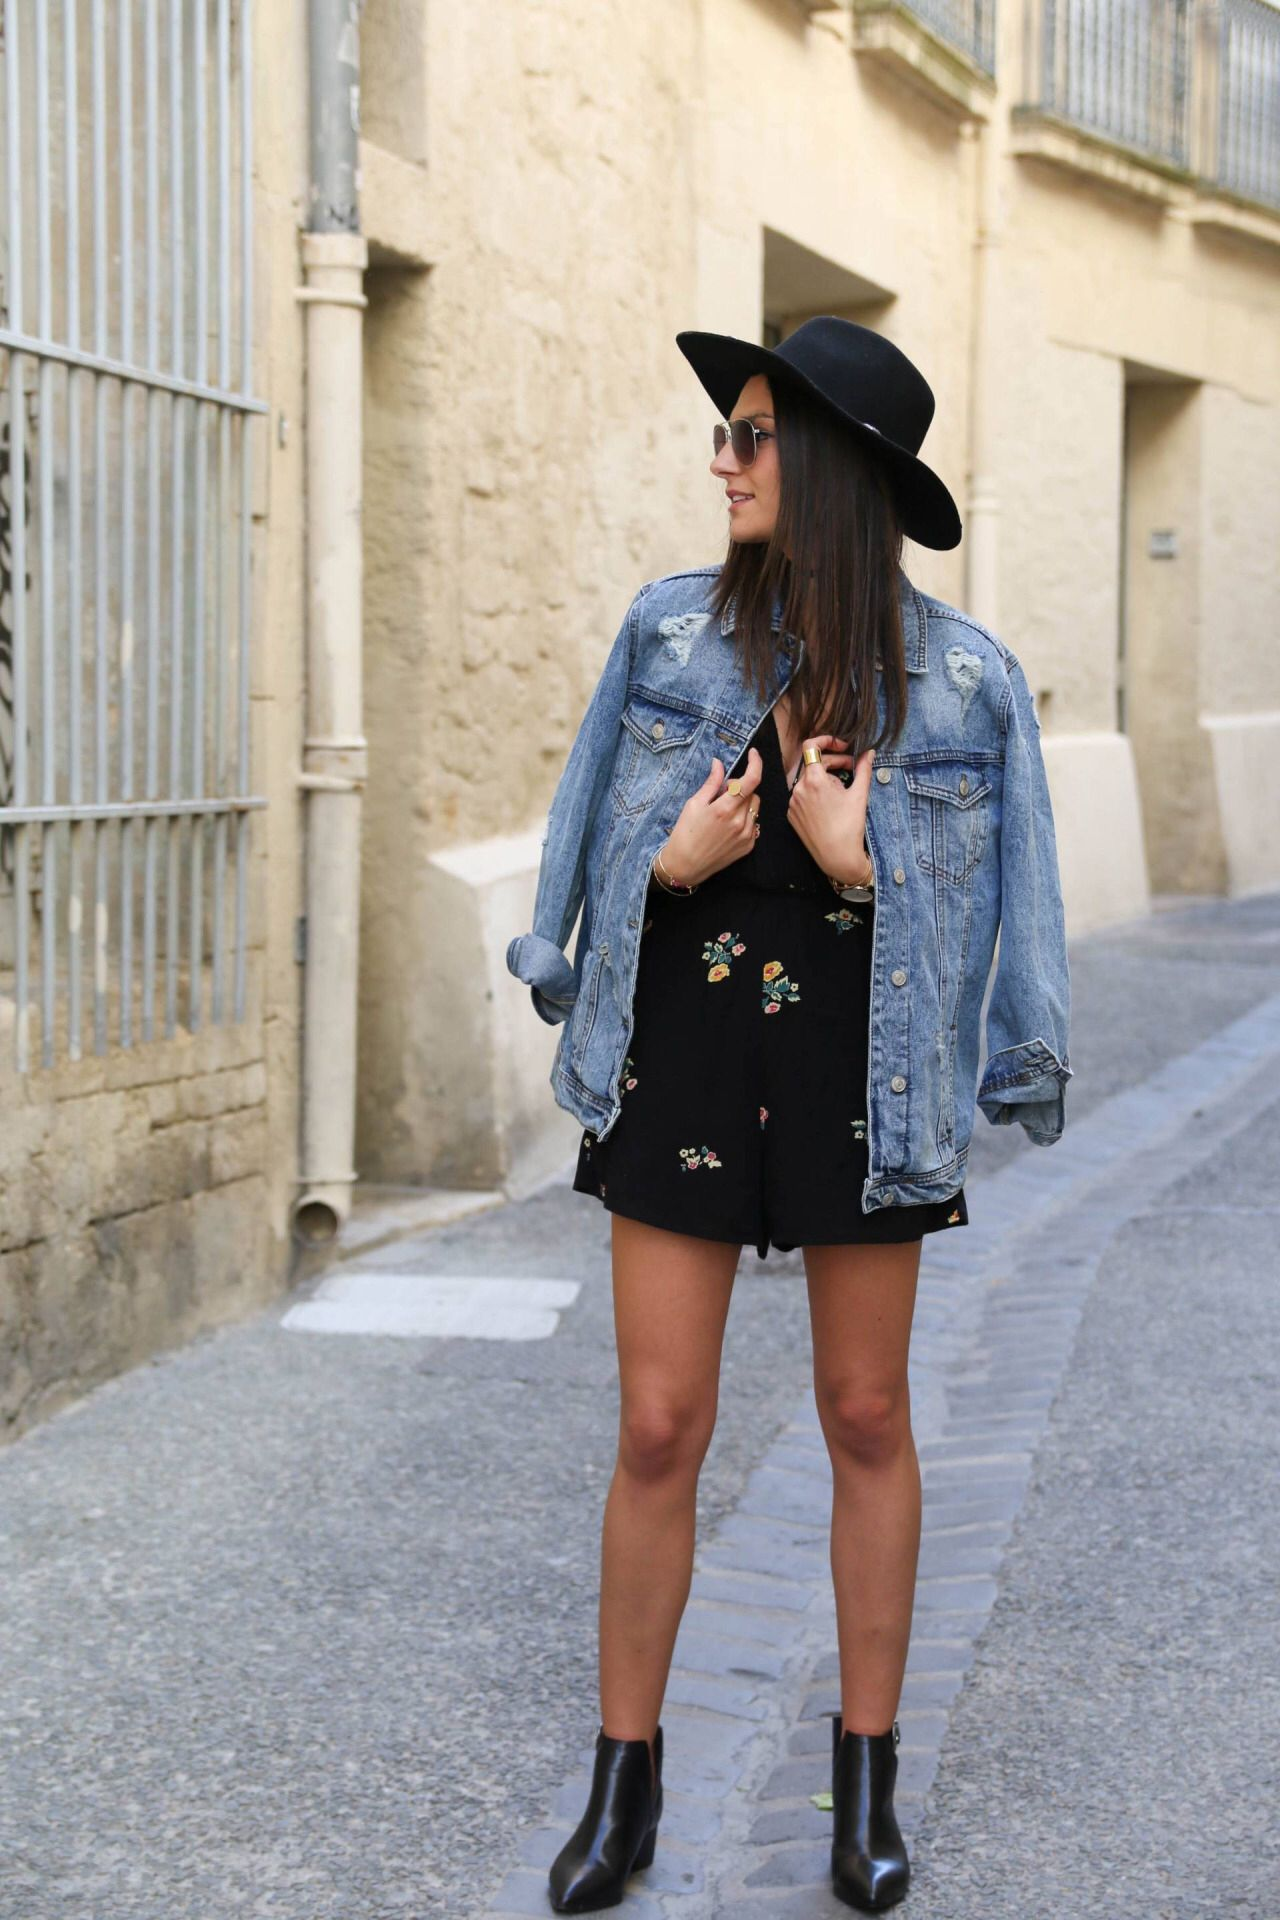 Spring Looks with Boots